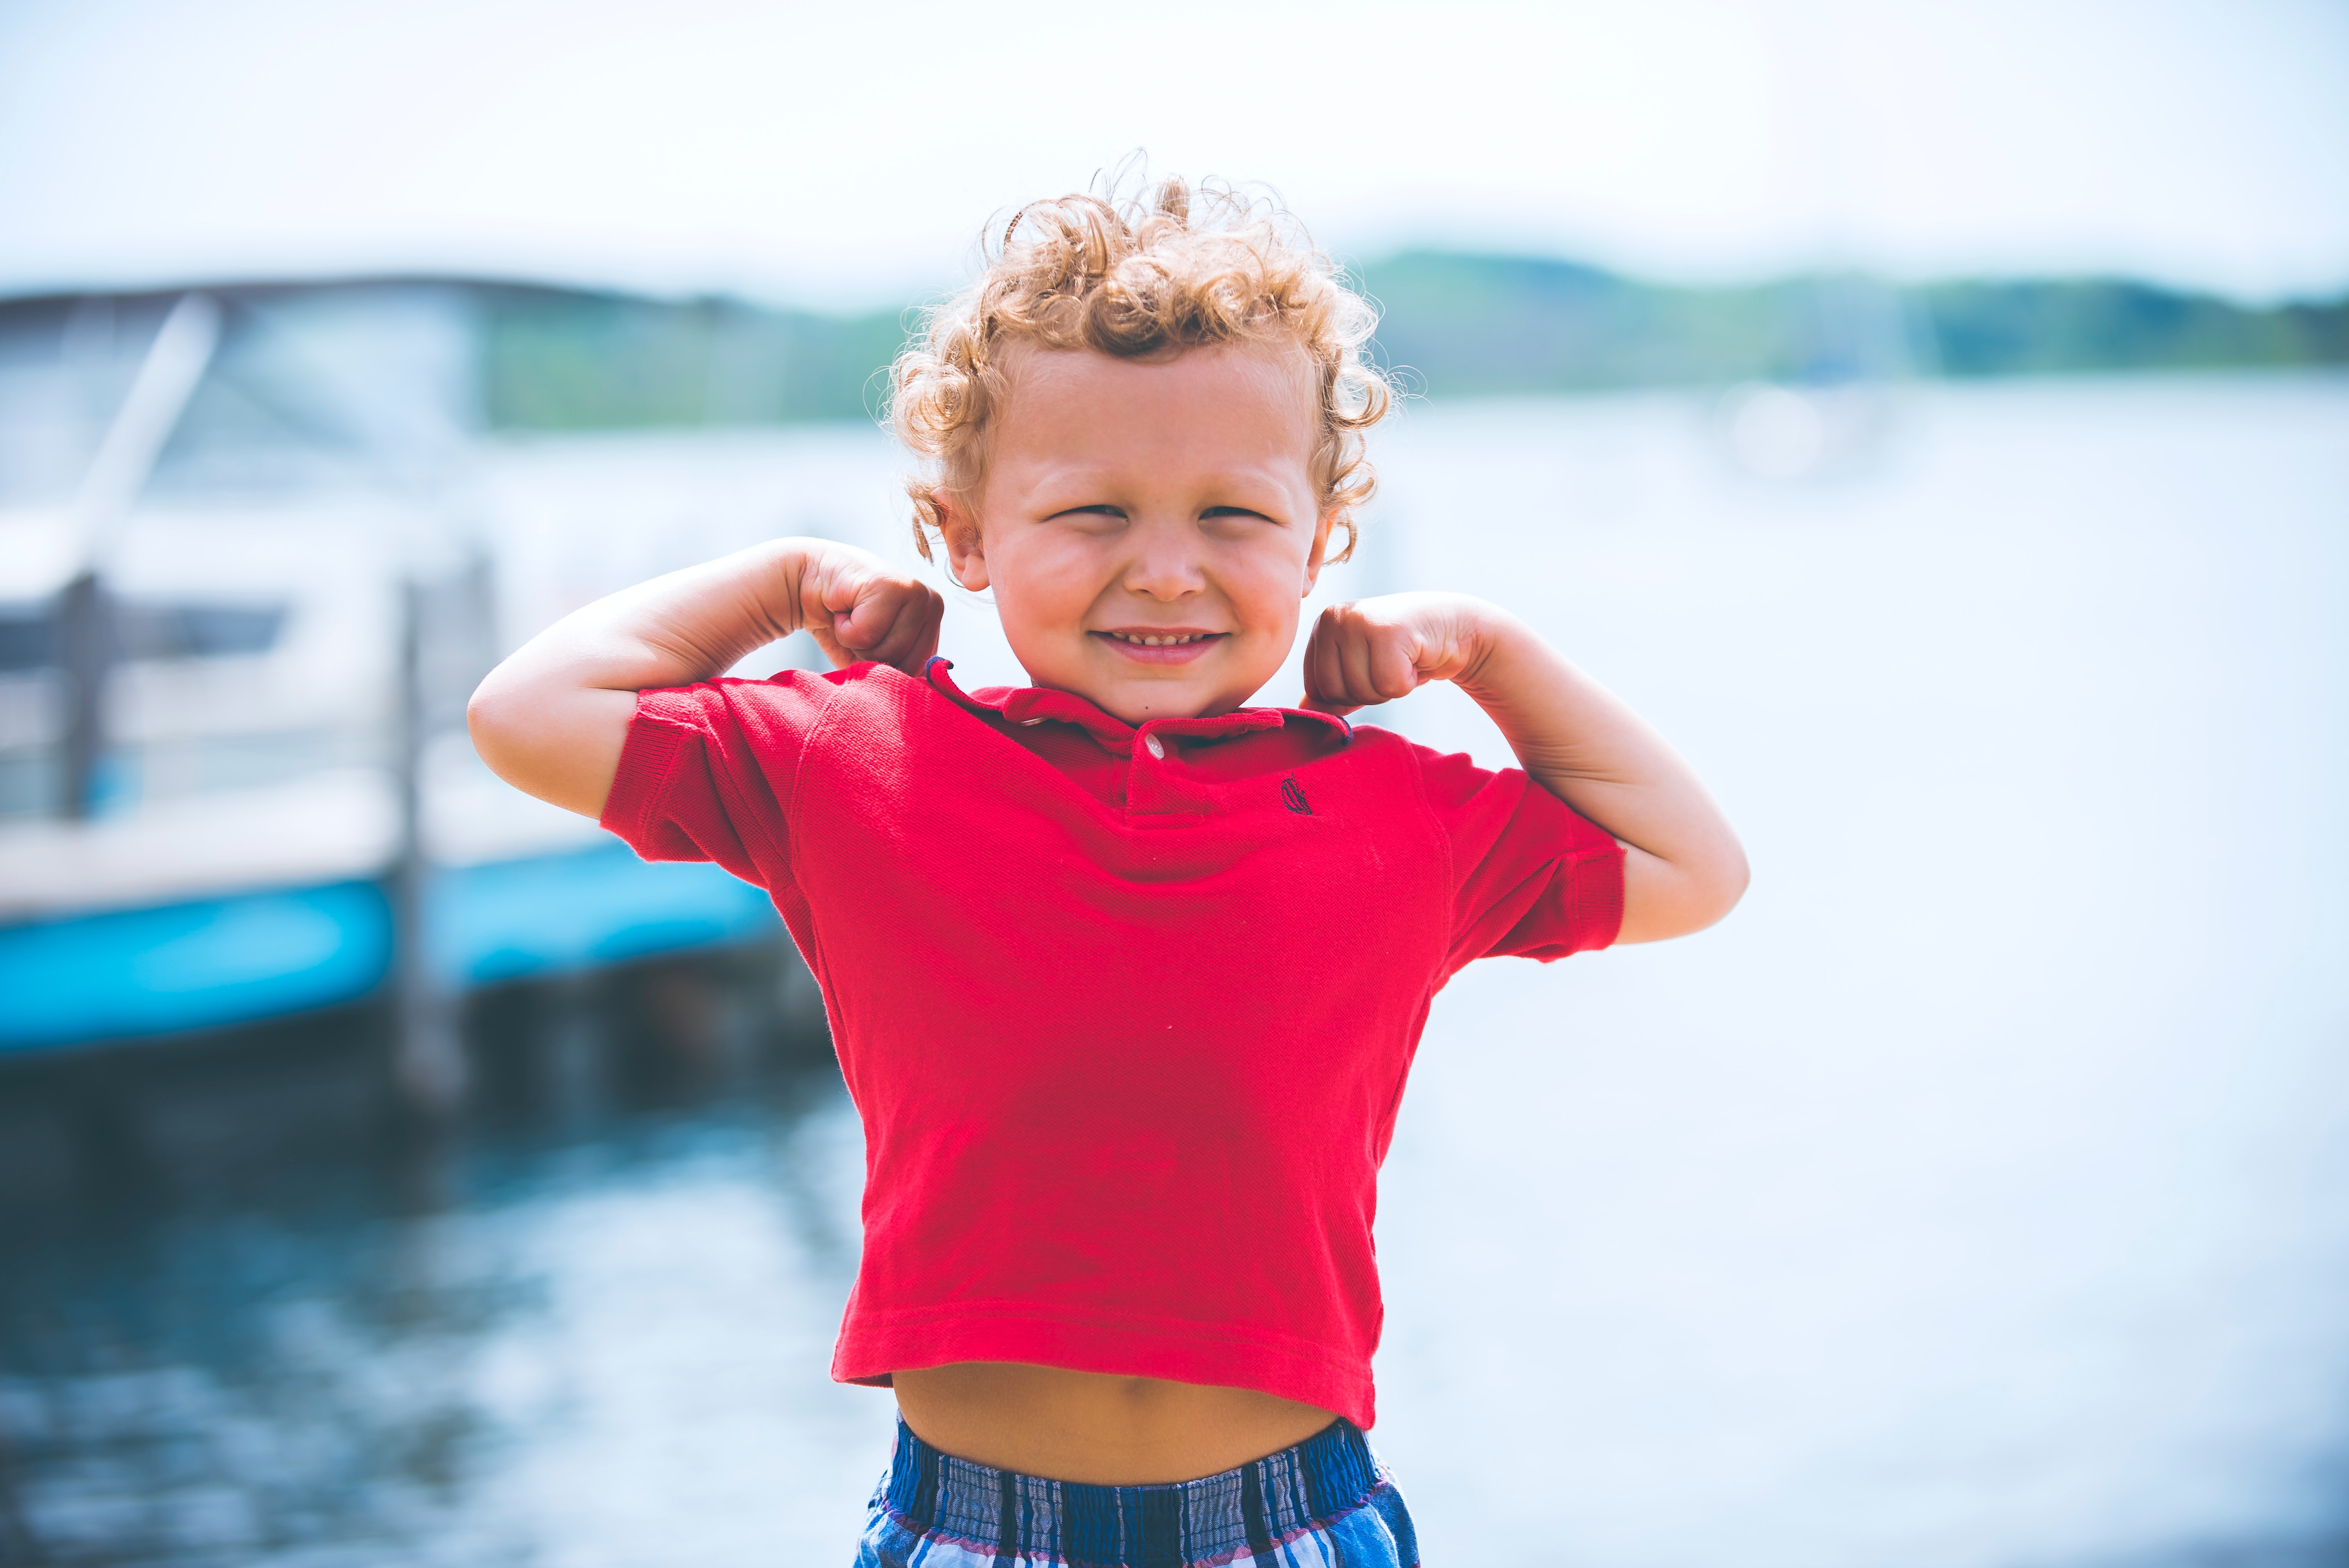 little boy in red shirt showing strength; pre-employment assessment